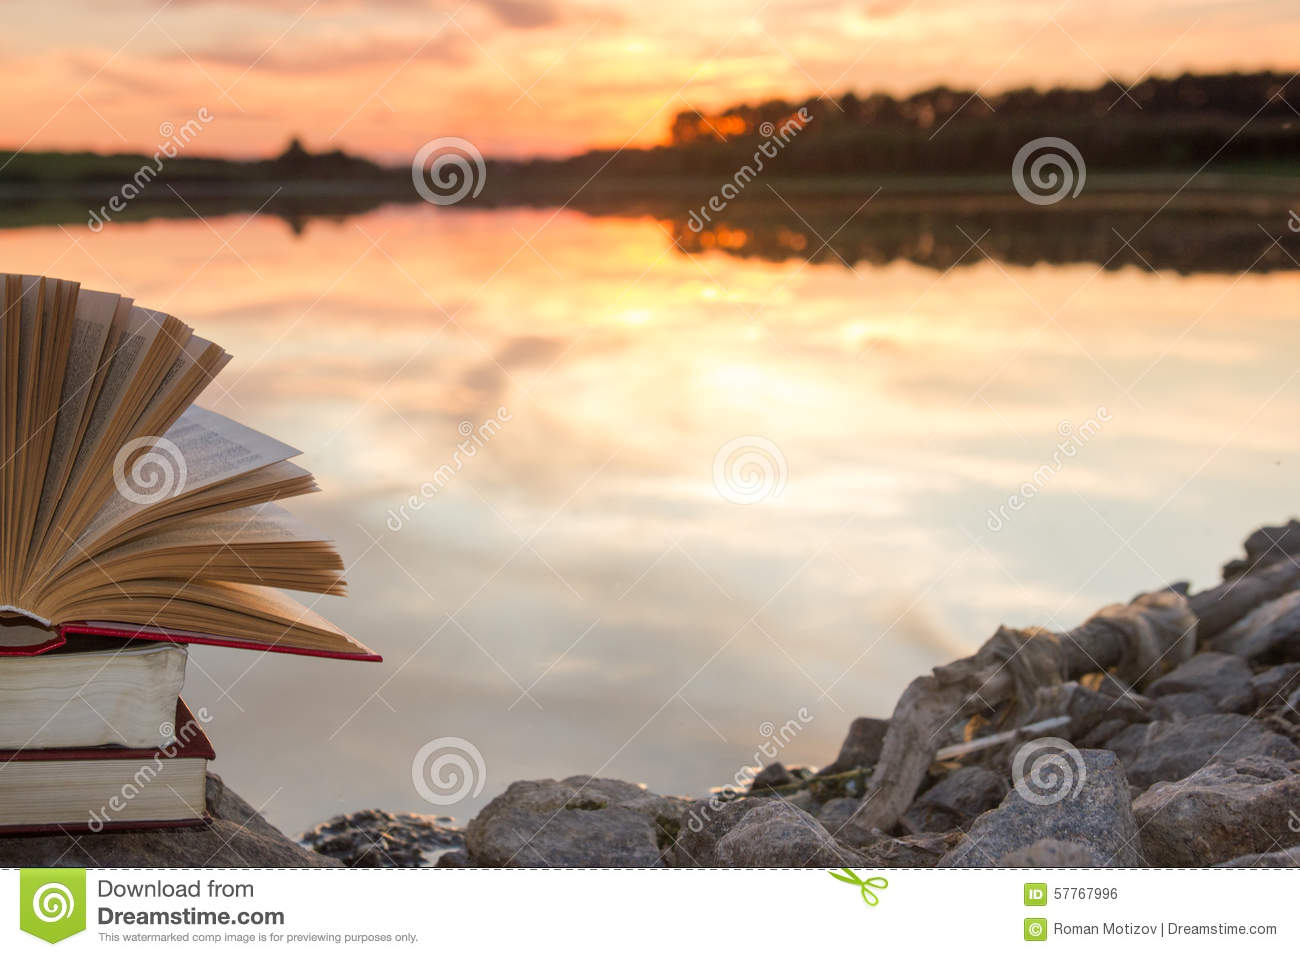 Stack of book and Open hardback book on blurred nature landscape backdrop against sunset sky with back light. Copy space, back to